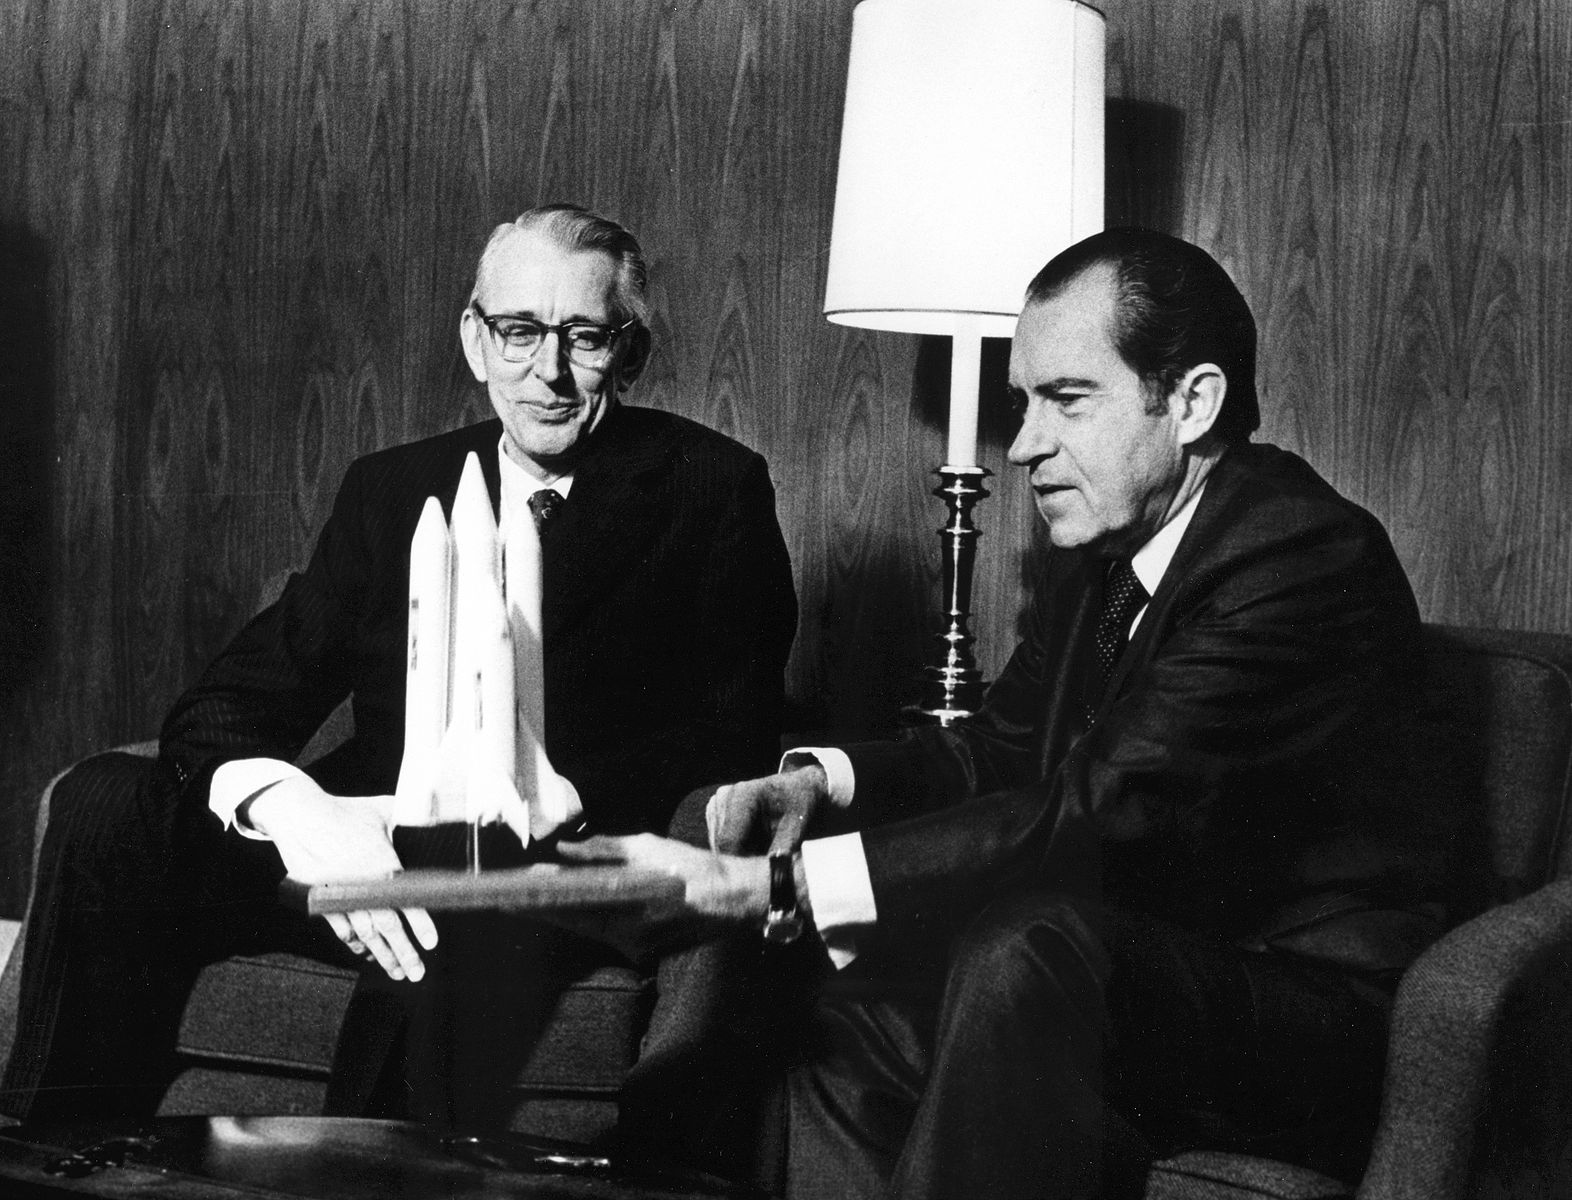 1572px-President_Nixon_and_James_Fletcher_Discuss_the_Space_Shuttle_-_GPN-2002-000109